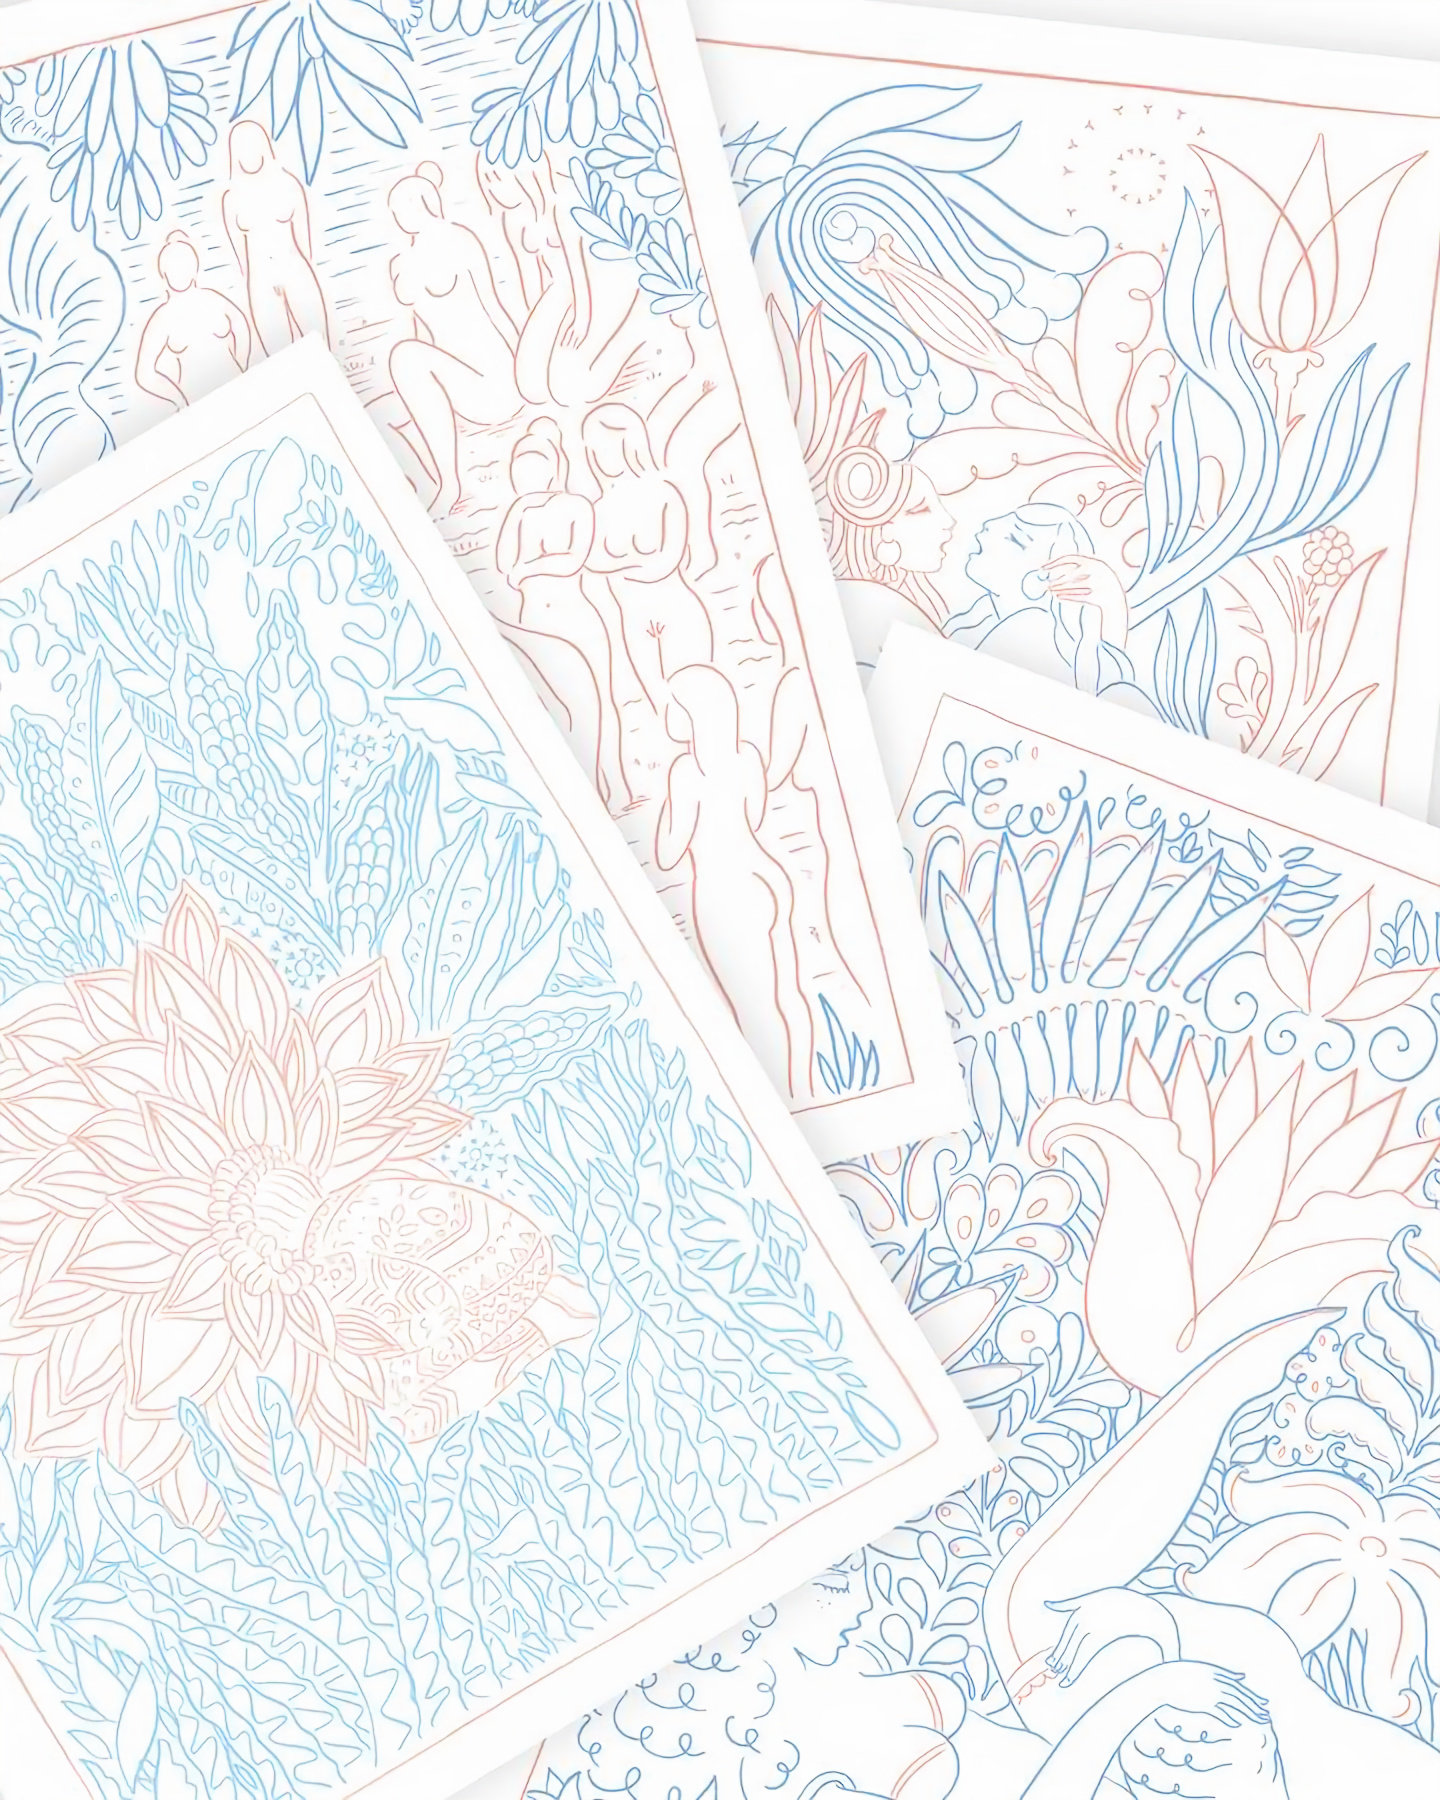 ALPHACOLORING VOL 1: The Garden of Delight, Erotic Coloring Book